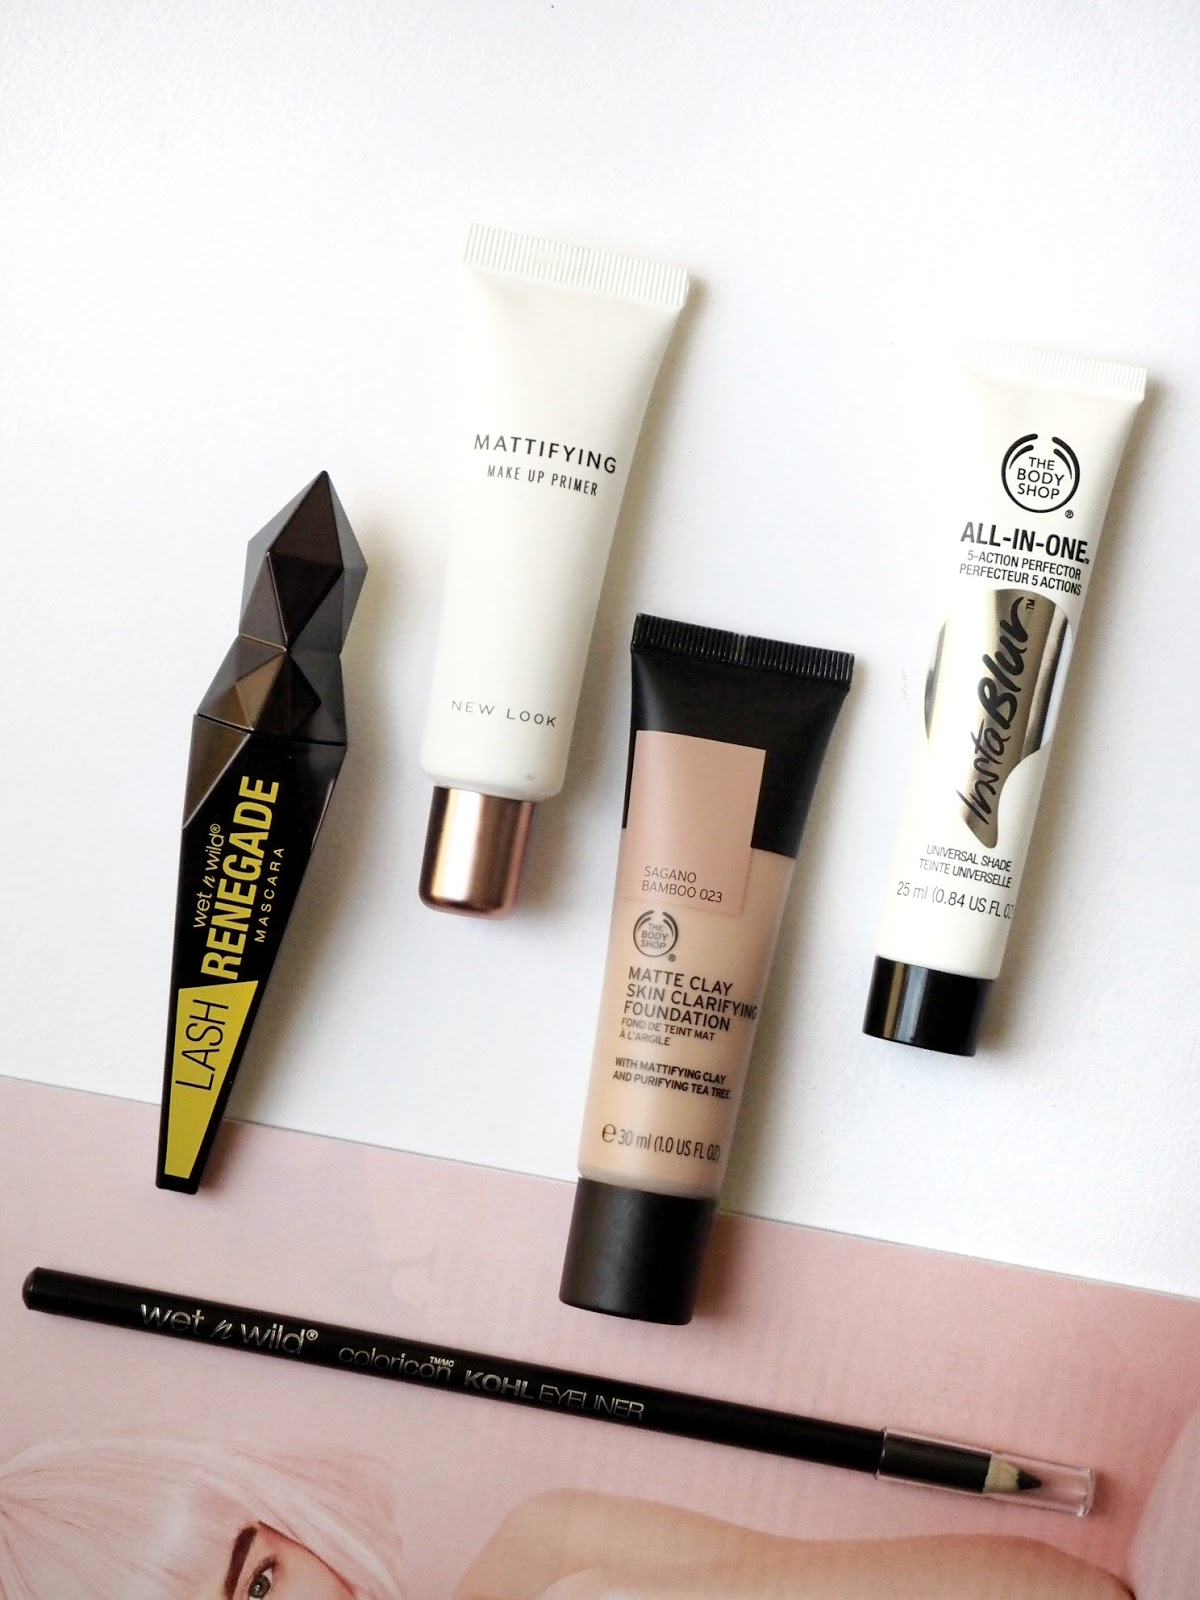 The Body Shop InstaBlur, The Body Shop Matte Clay foundation, Wet & Wild mascara, Wet & Wild kohl liner, New Look primer